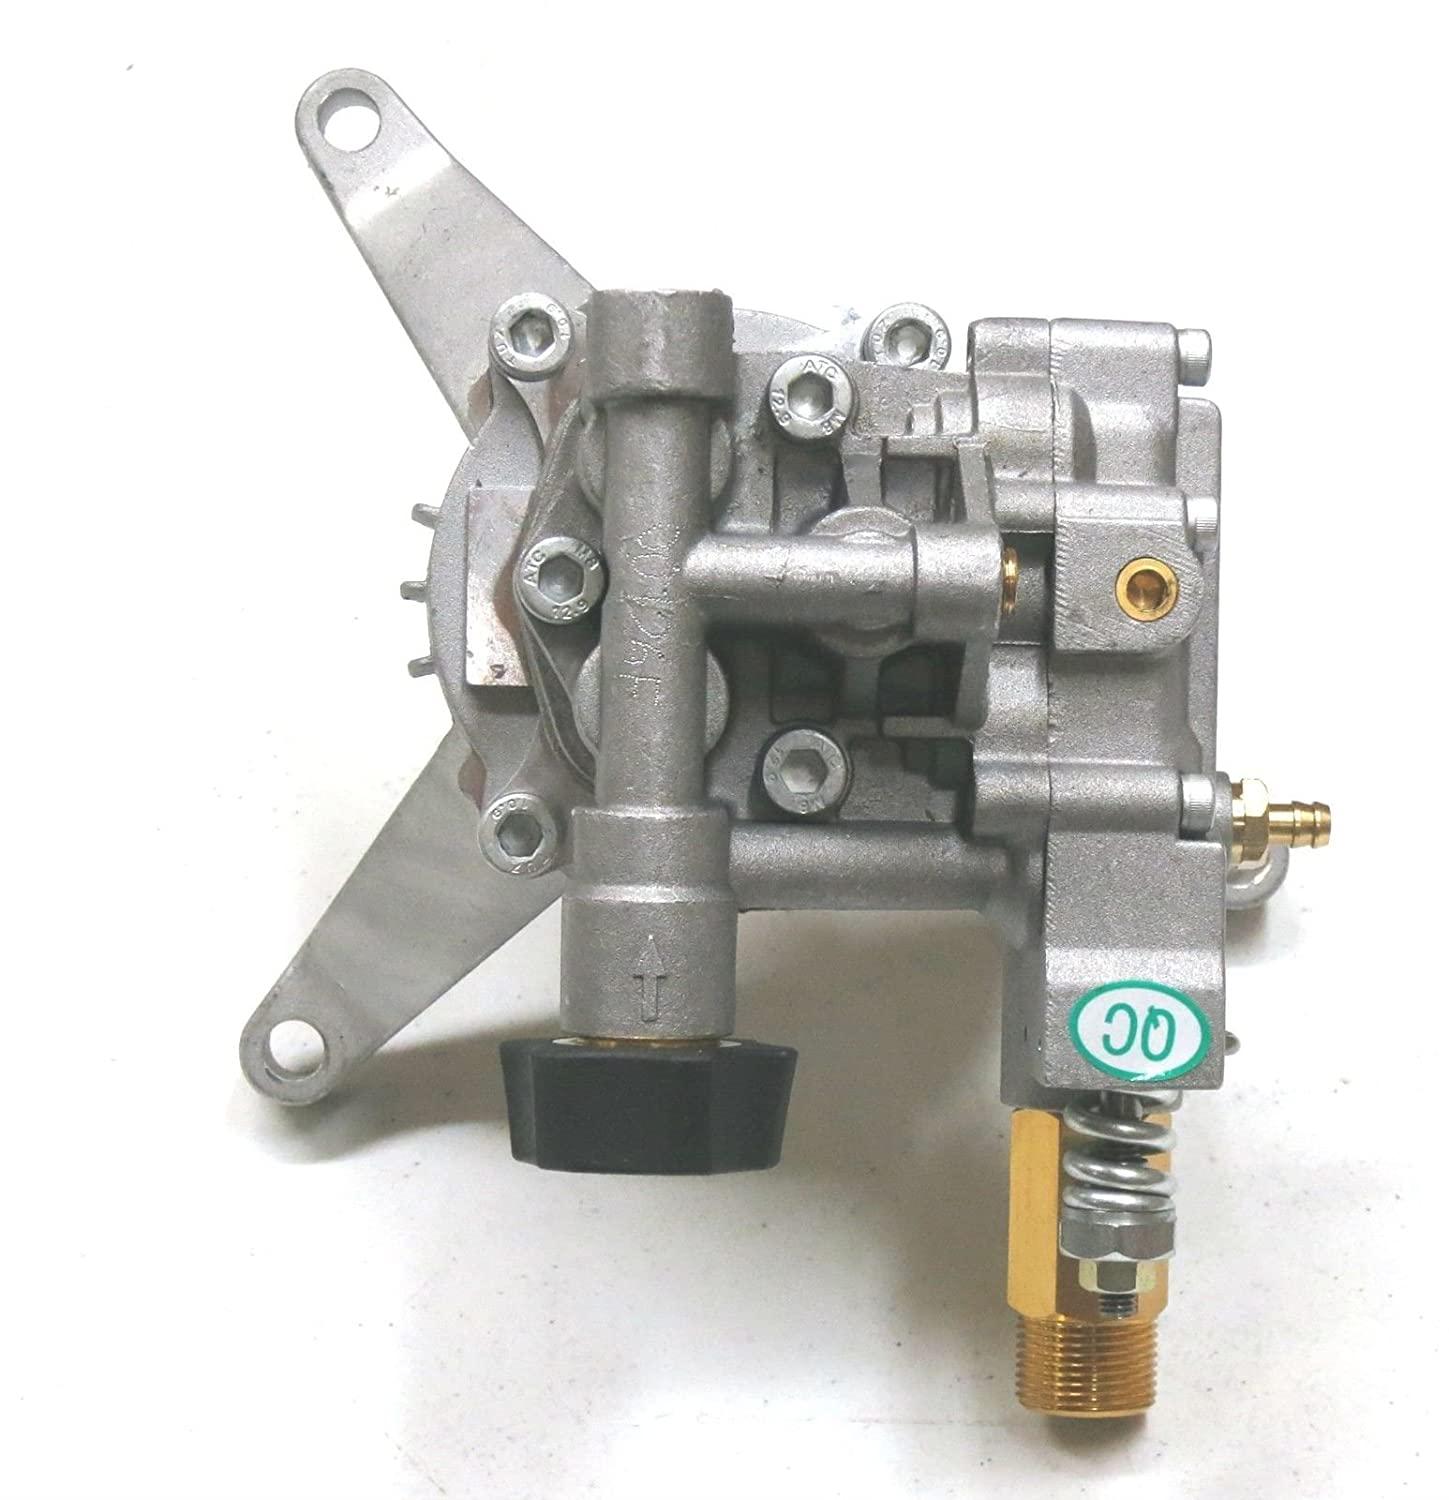 2800 psi POWER PRESSURE WASHER WATER PUMP Sears Craftsman 580.752700 580.752710 by The ROP Shop